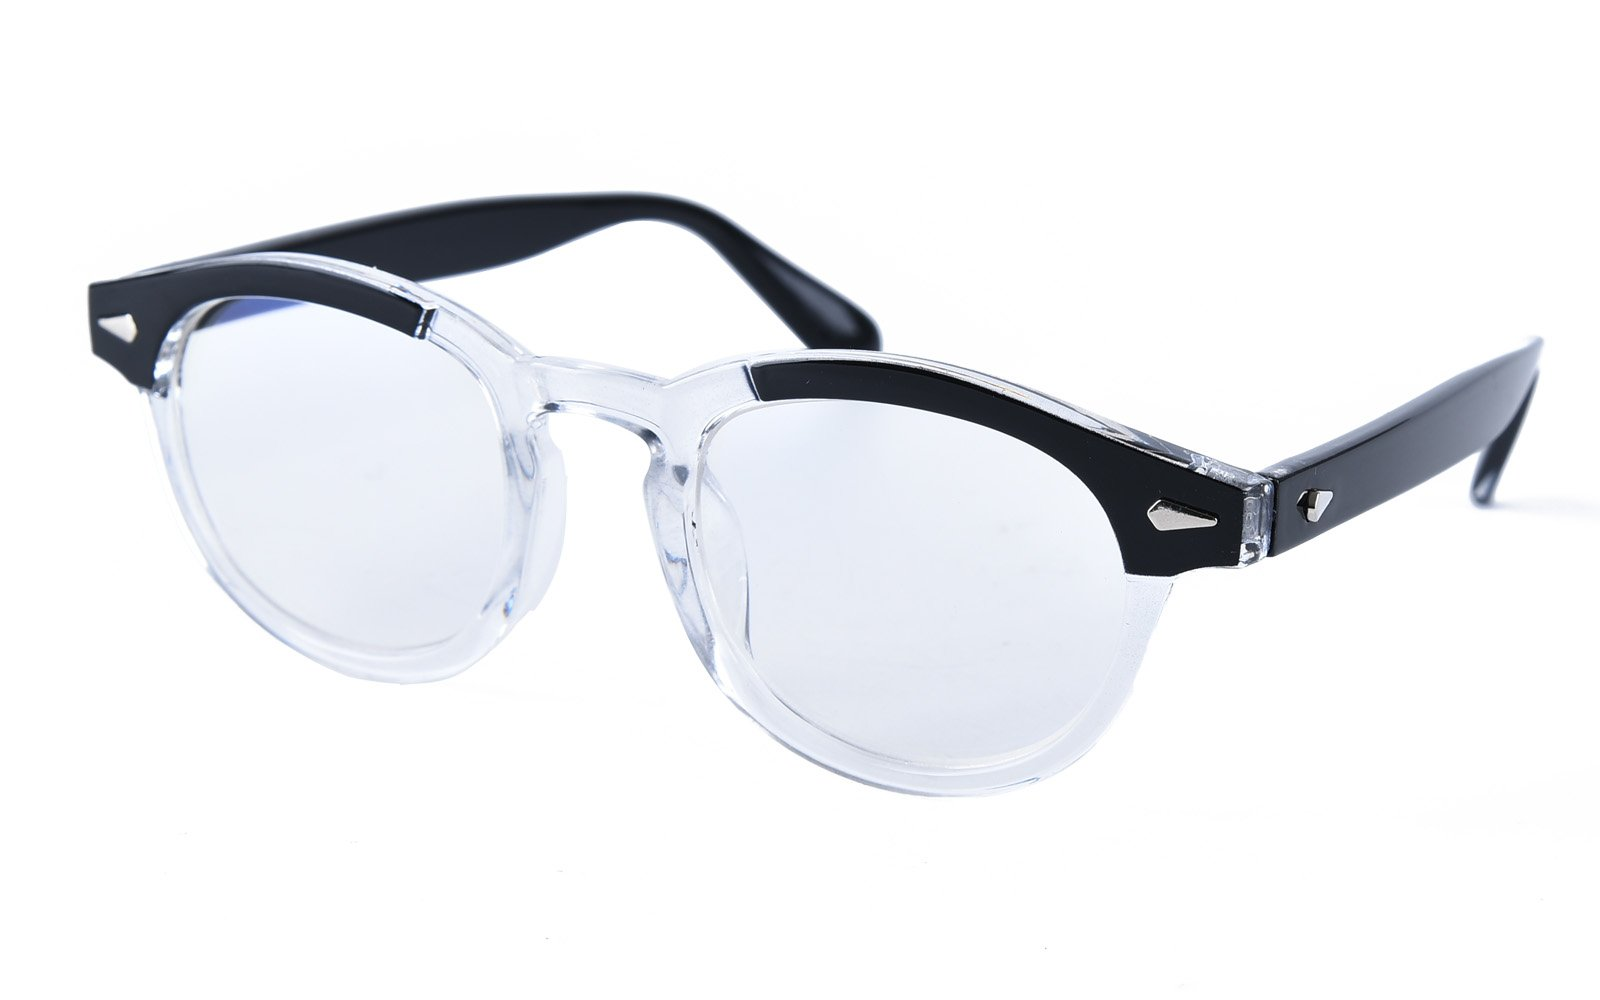 Beison Computer glasses Optical Eyeglasses Frame Spectacles Clear Lens (Black / Clear, Clear)